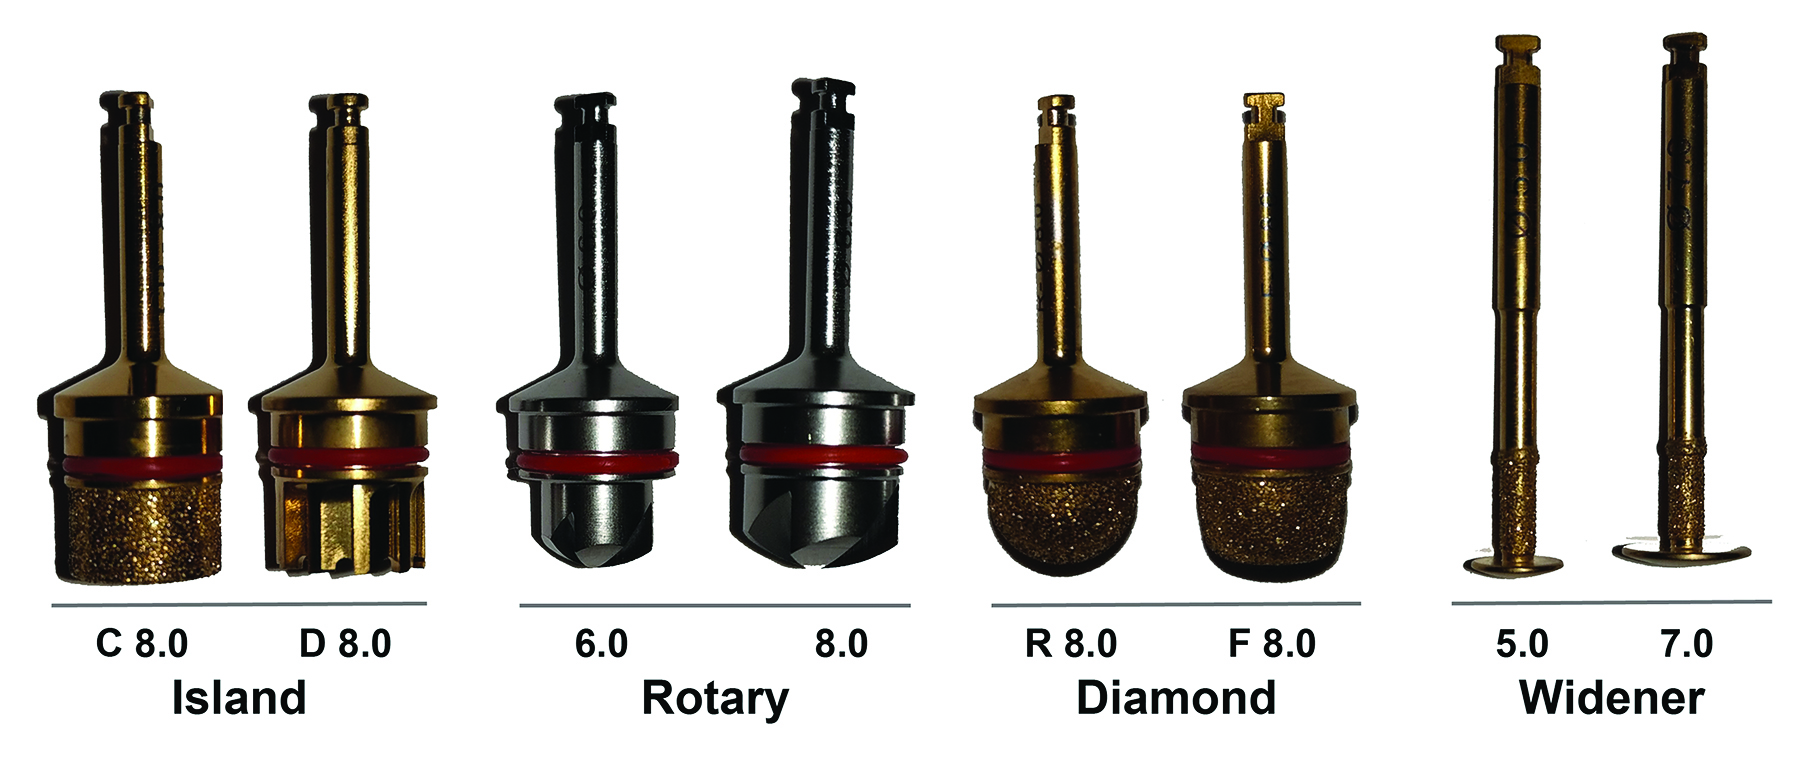 Rotary instruments used in the surgical handpiece